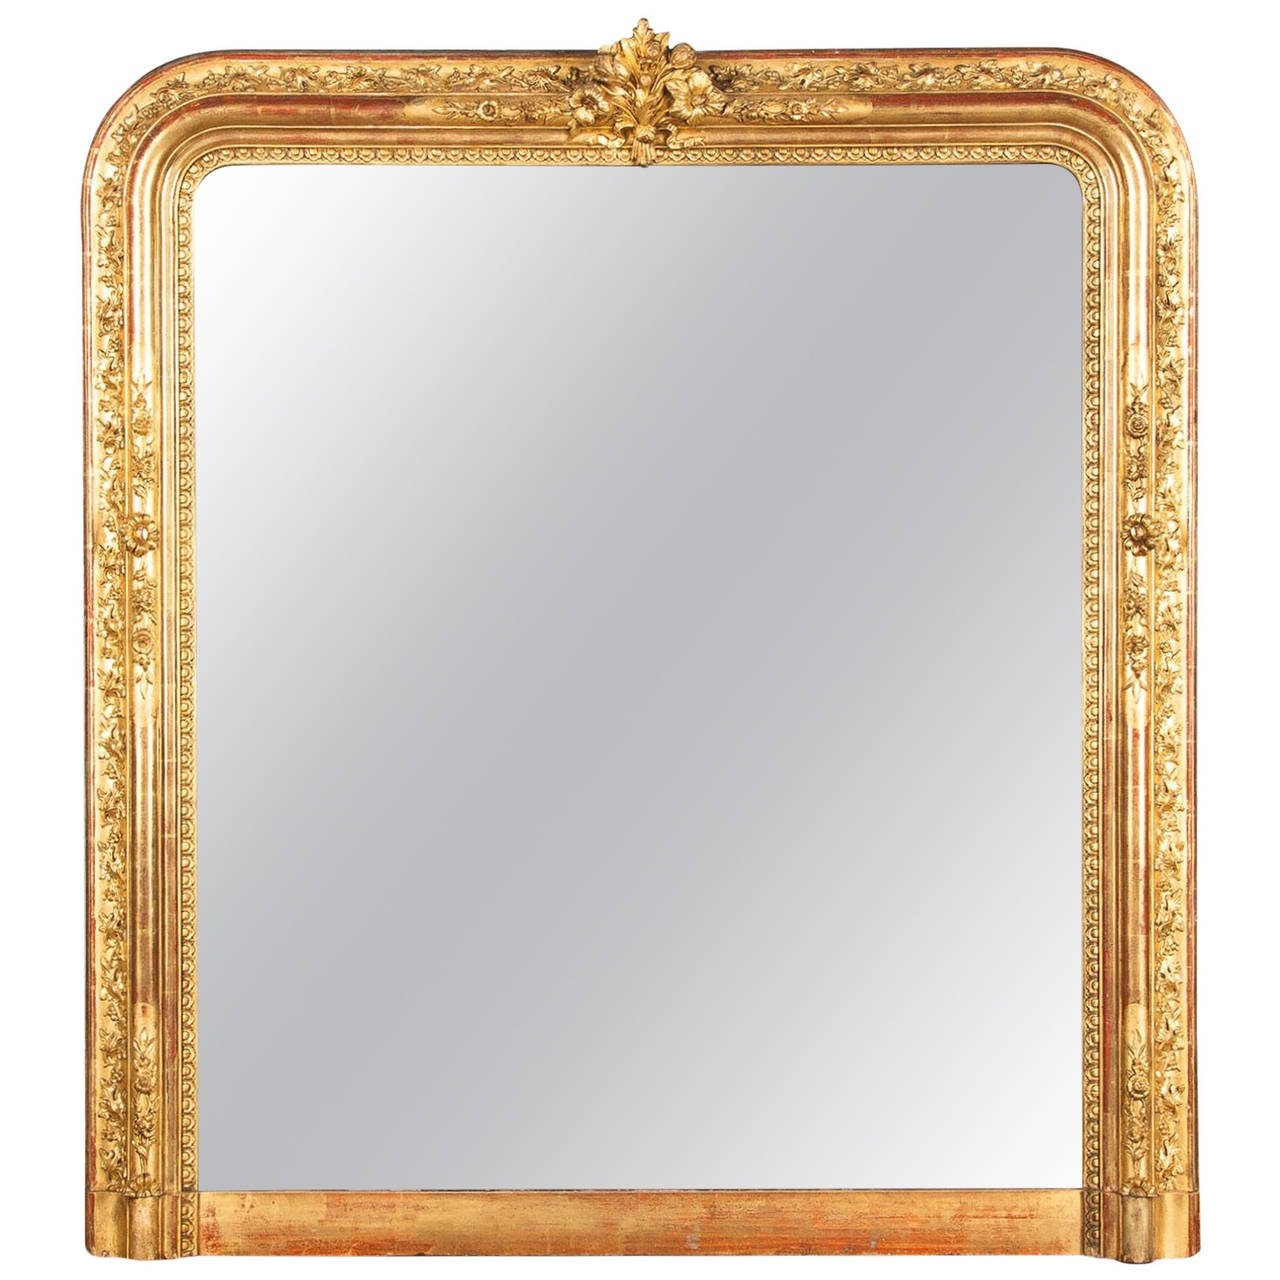 French Napoleon Iii Gold Leaf Mantel Mirror 1870s For Sale At 1stdibs For Gold French Mirror (Image 5 of 15)